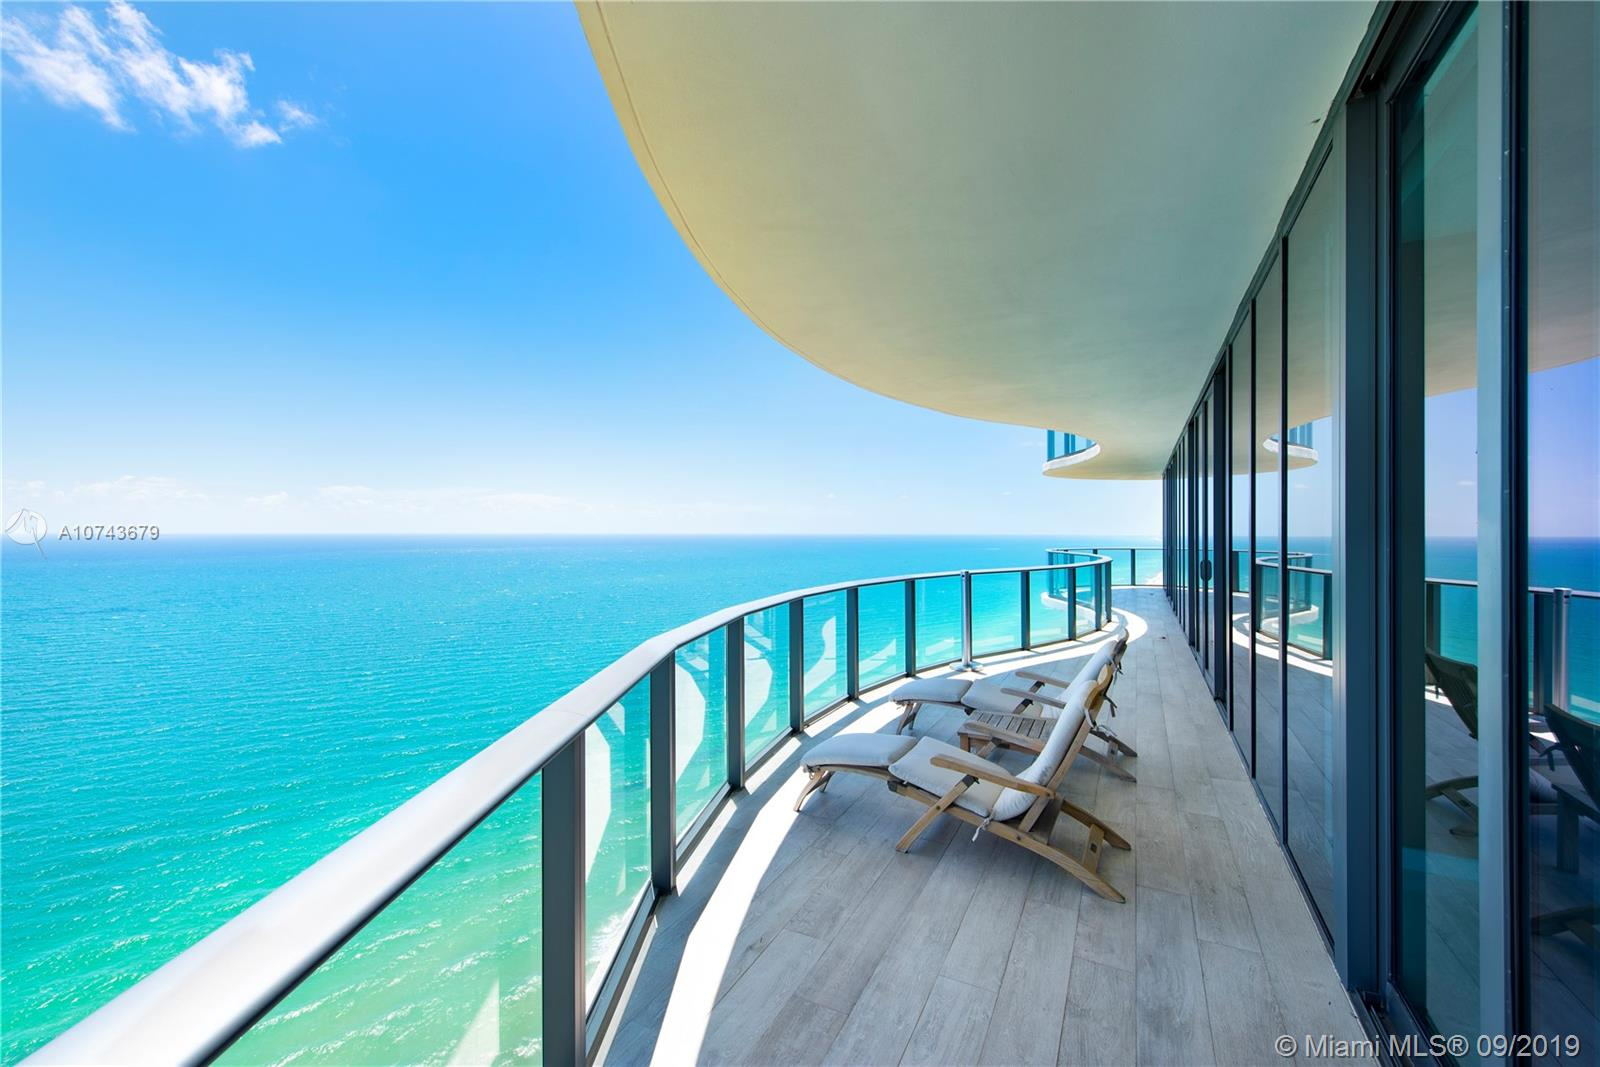 Enjoy dramatic 360º endless views on your wrap-around 2100 SF terrace; from the ocean blue to the multi-million-dollar homes of Golden Beach and the downtown Miami skyline over Biscayne Bay. Top of the line SubZero refrigeration and Italian cabinetry grace your private chef's kitchen complete with built in wine storage and an outdoor BBQ. Kreon lighting, Crestron home automation, electric blinds and surrounded by polarized thermal windows panes. Masterfully designed by Architectonica and interior design by Charles Allem, as an extension of your private residence, Regalia offers a concierge, full service spa, beach & pool, a private wine vault, business center, children's play room, library, yoga studio and fitness center featuring state of the art Technogym, Cybex and Peloton equipment.